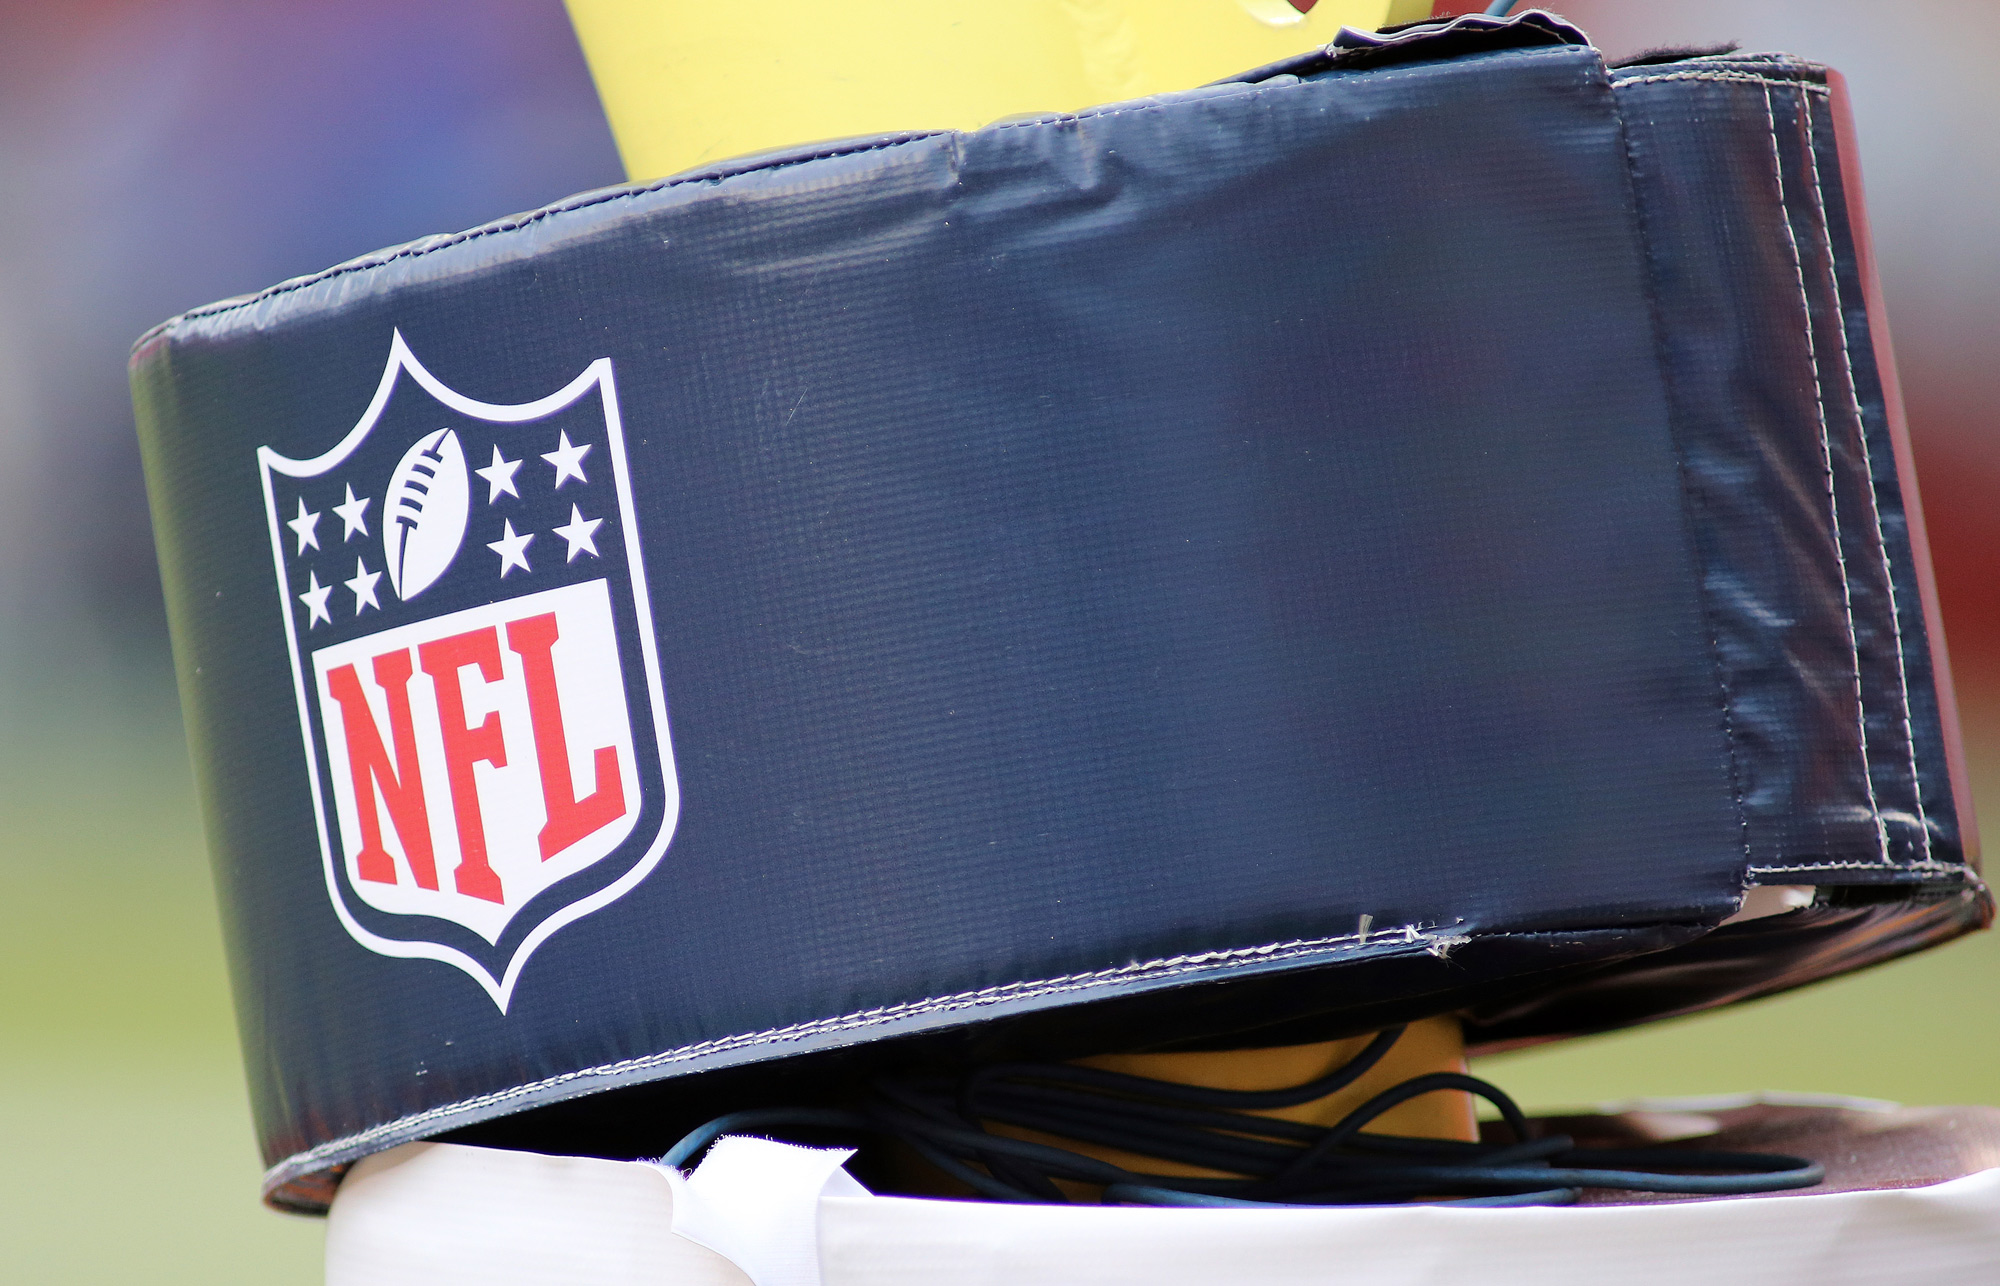 A close up an NFL football logo on a goalpost is seen during an NFL football game on October 11 in Landover, Maryland.